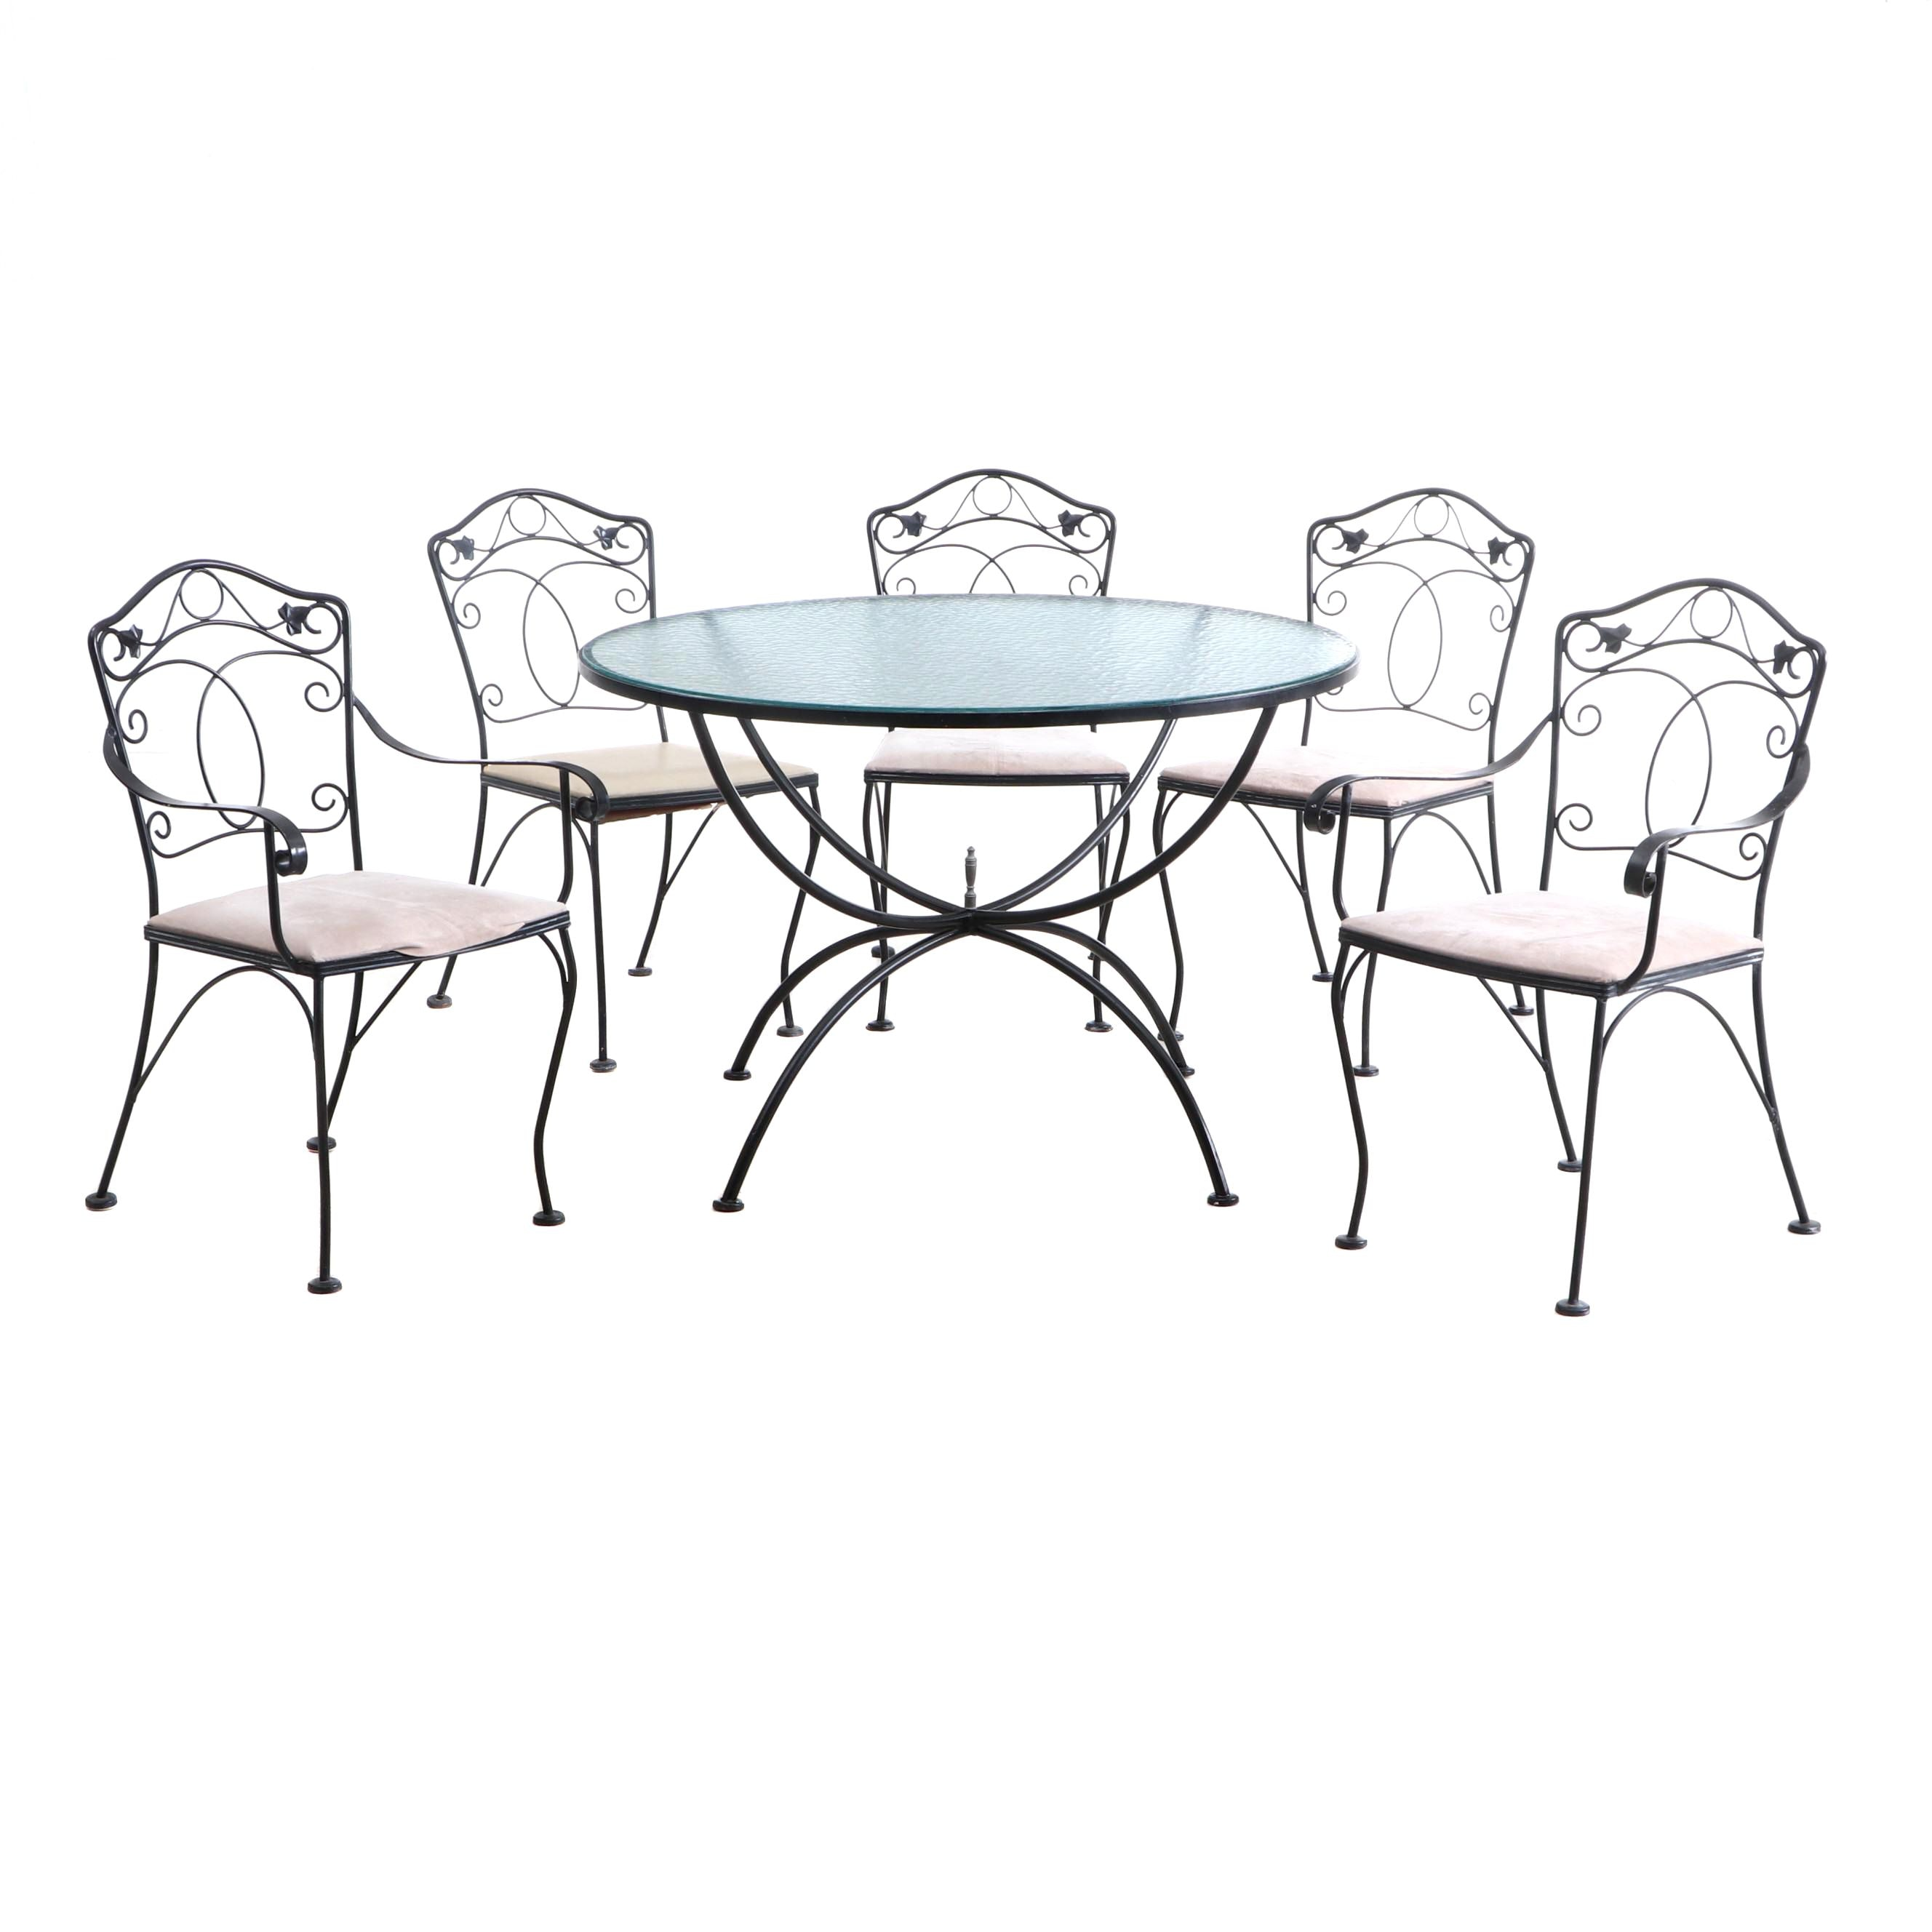 Wrought Metal Patio Table and Five Chairs by Meadowcraft